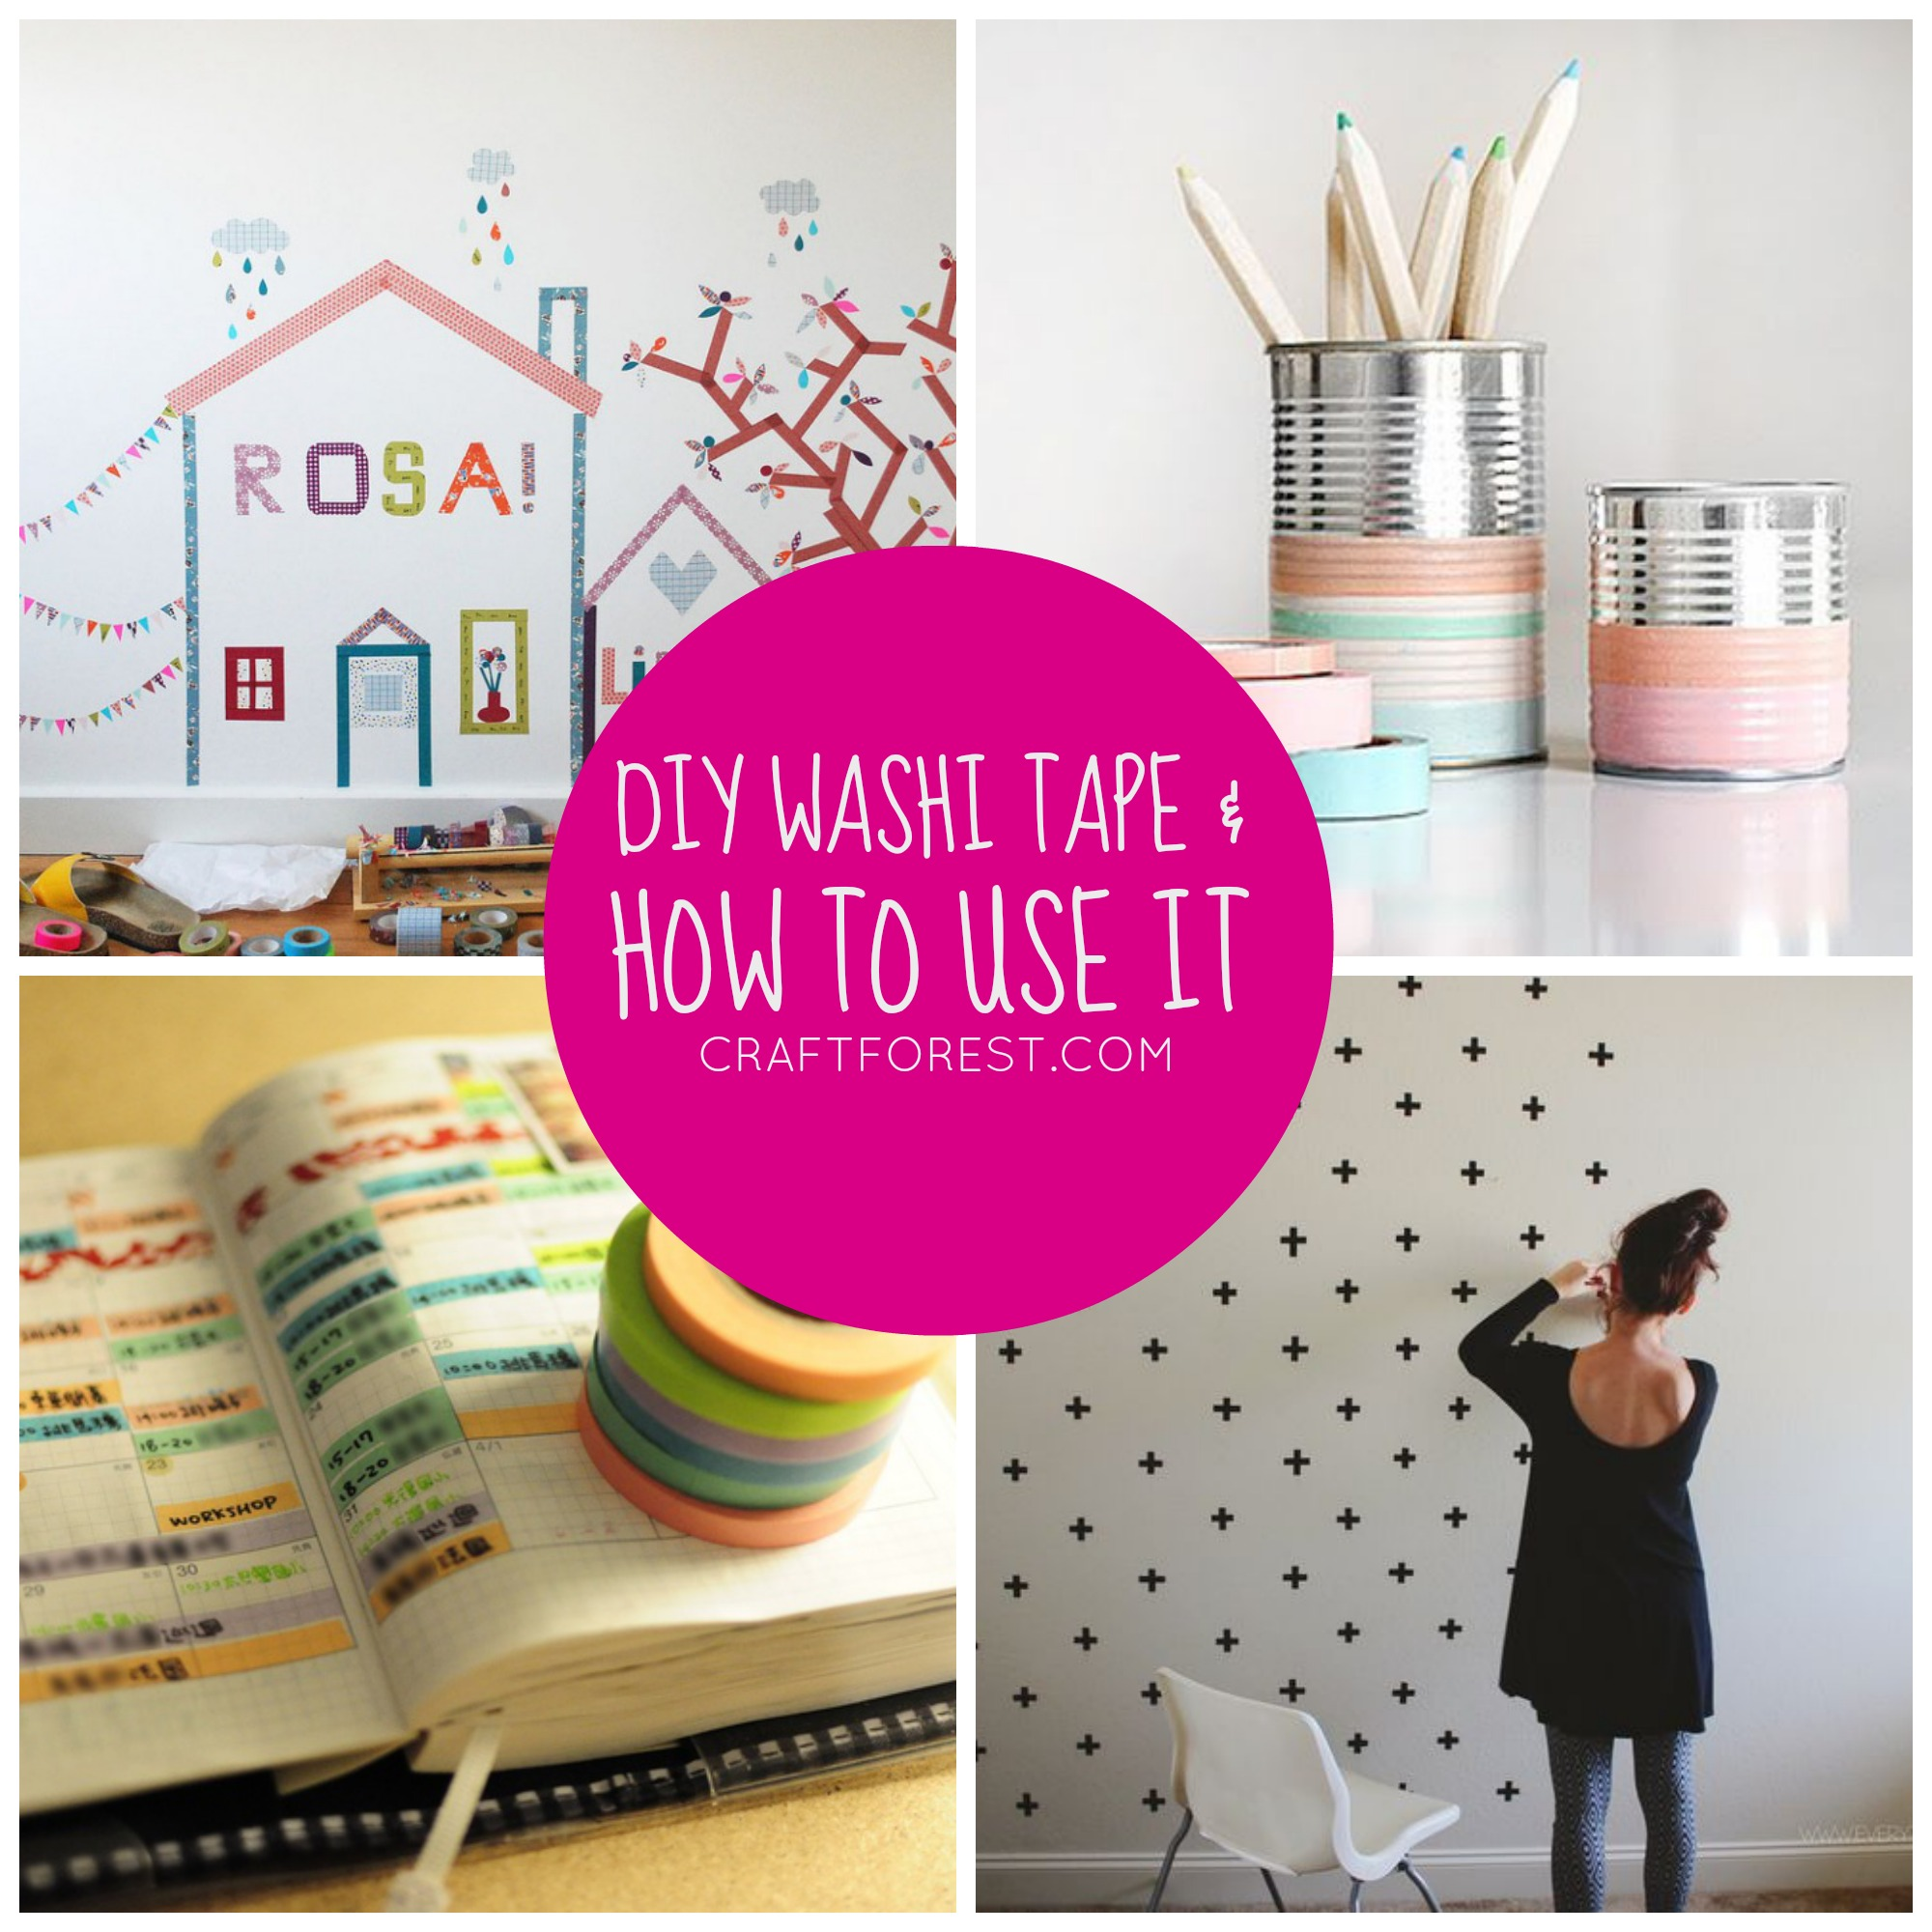 Washi Tape Diy Video Diy Fabric Washi Tape And Craft Projects